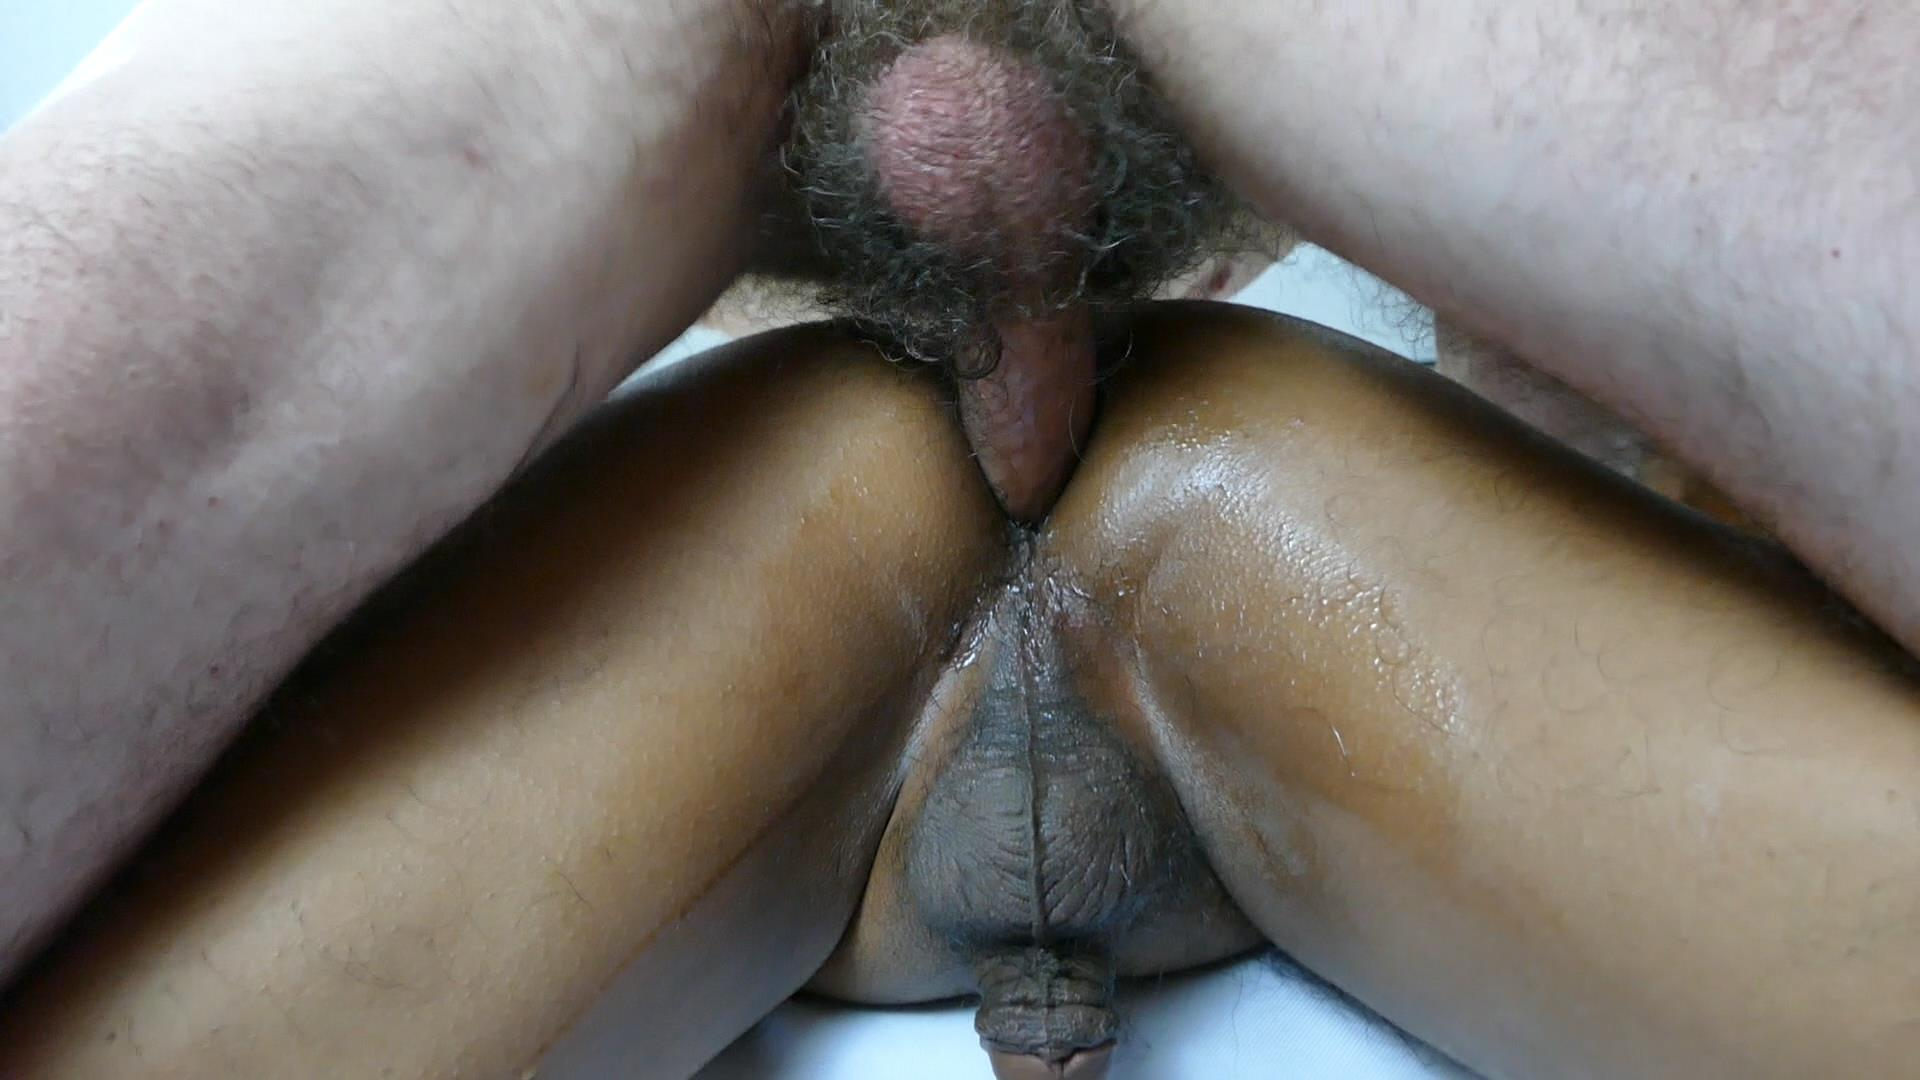 Daddys-Asians-Twink-Gets-Bareback-Fucked-By-Older-Man-20 Horny Asian Boy Takes A Hairy Daddy Dick Raw Up The Ass